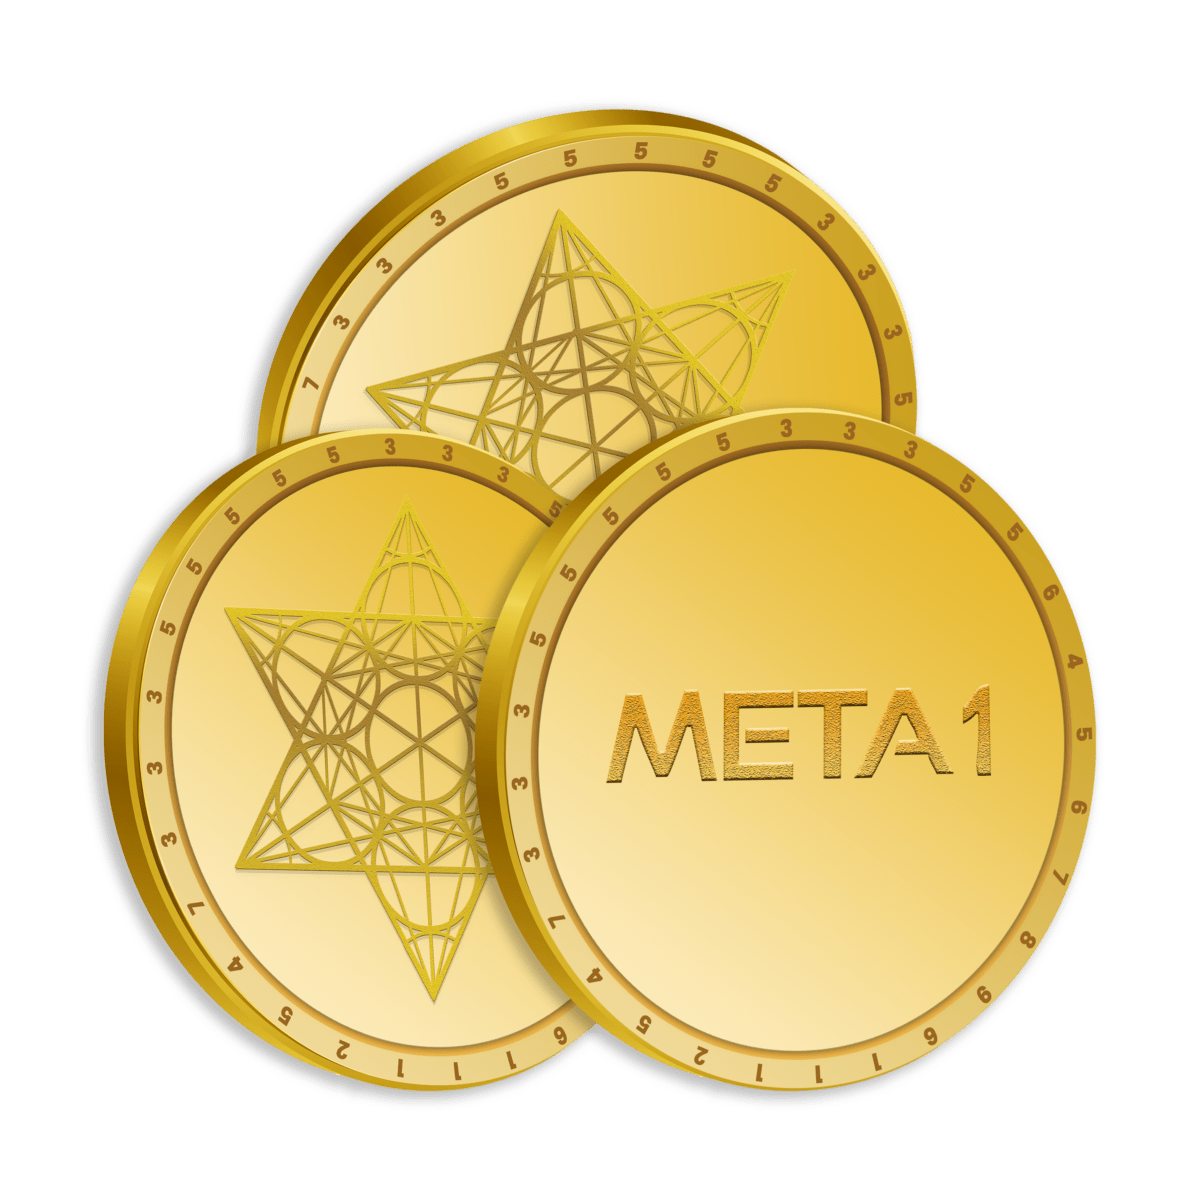 META 1 Coin Report: Gold-backed Seeing Steady Rise in Demand